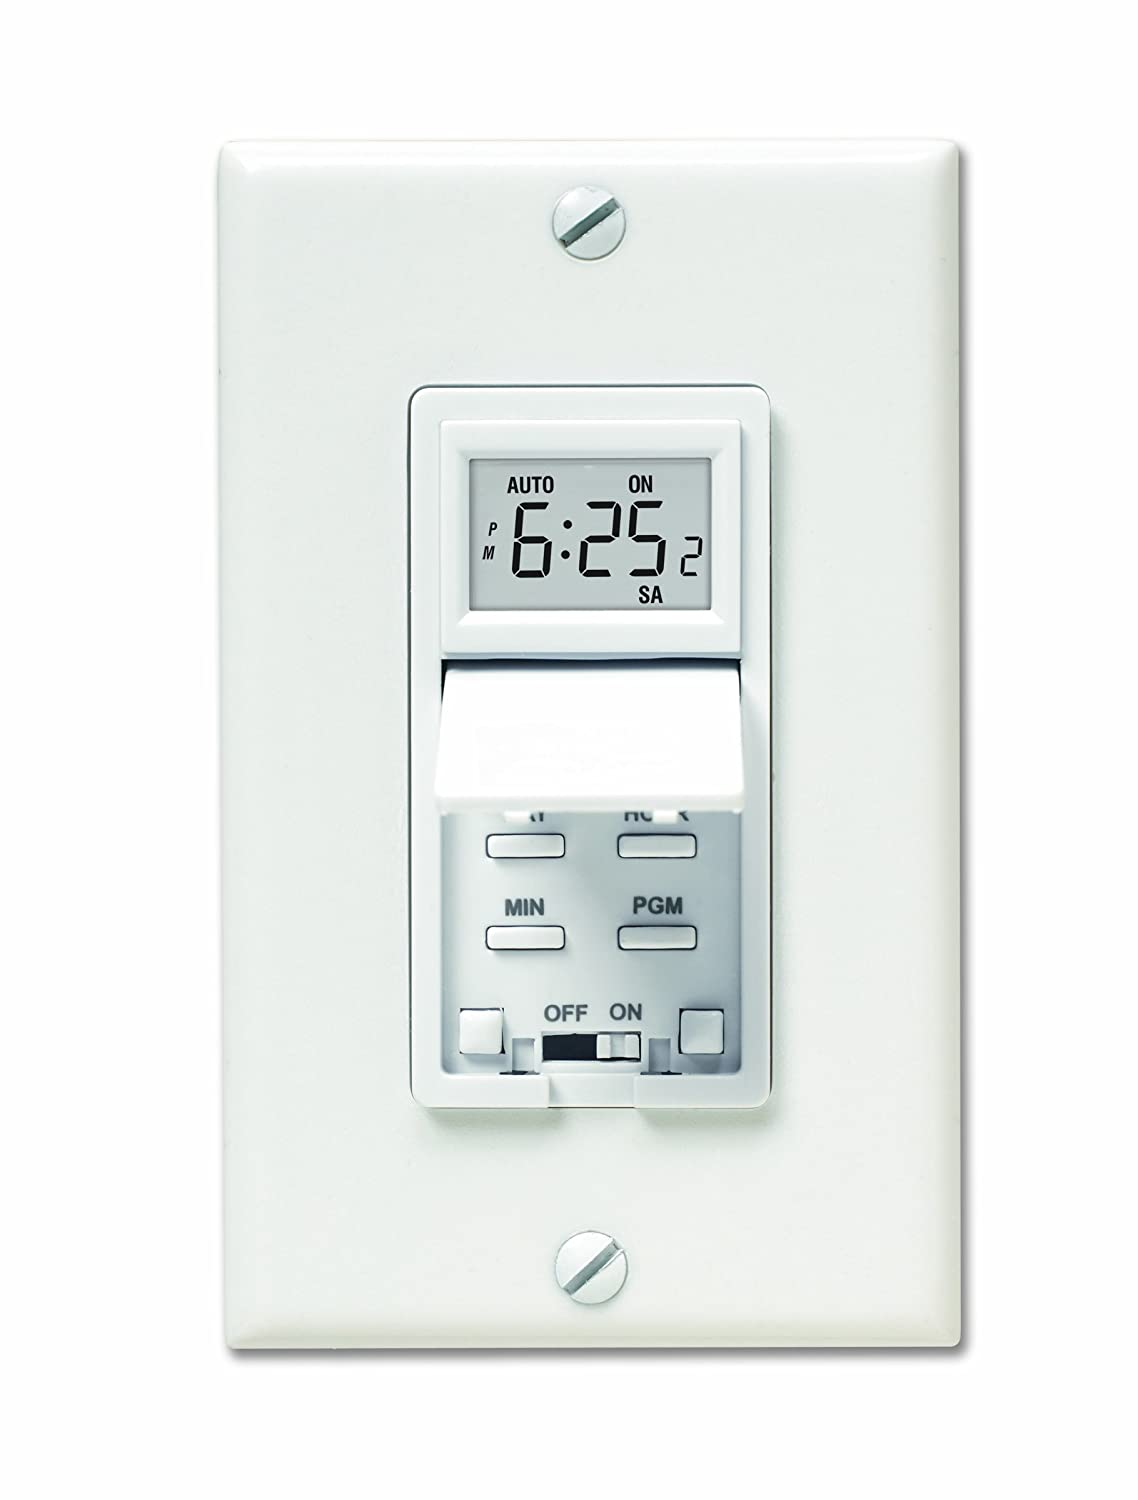 717oiYCarPL._SL1500_ amazon com honeywell rpls530a 7 day programmable timer switch Appliance Switch Honeywell at gsmx.co